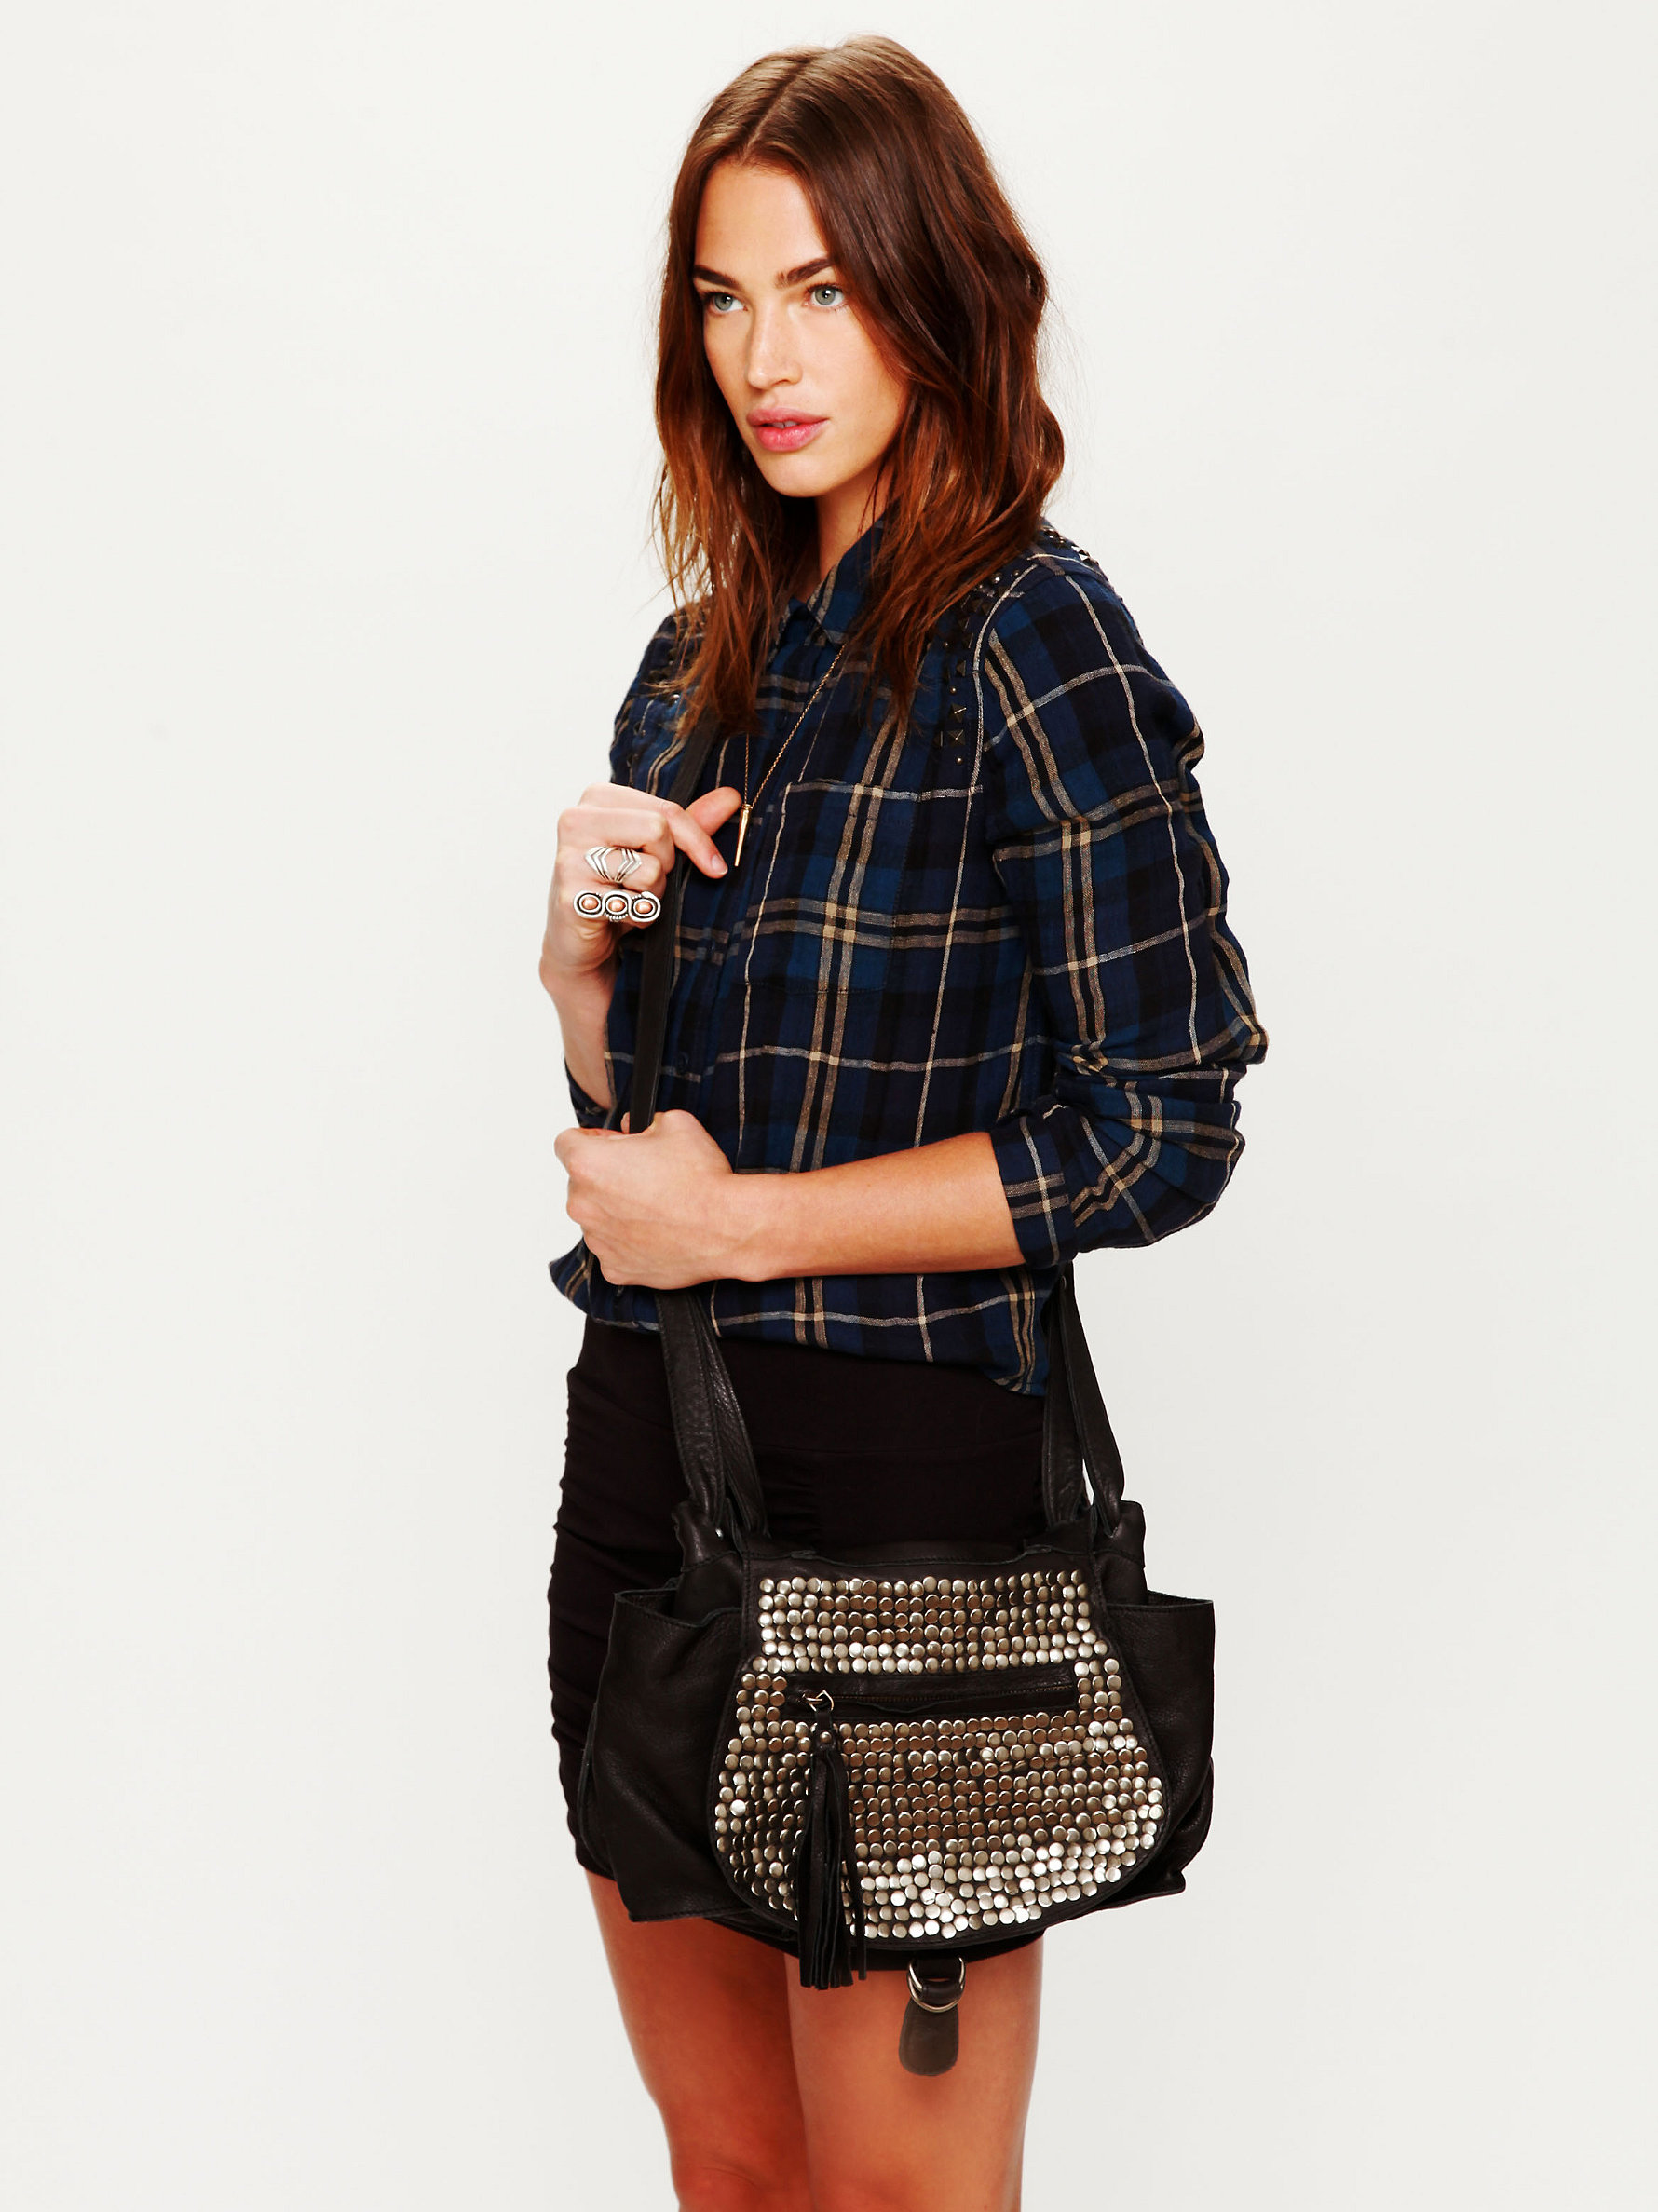 Studded Jessie Satchel by Cut N' Paste